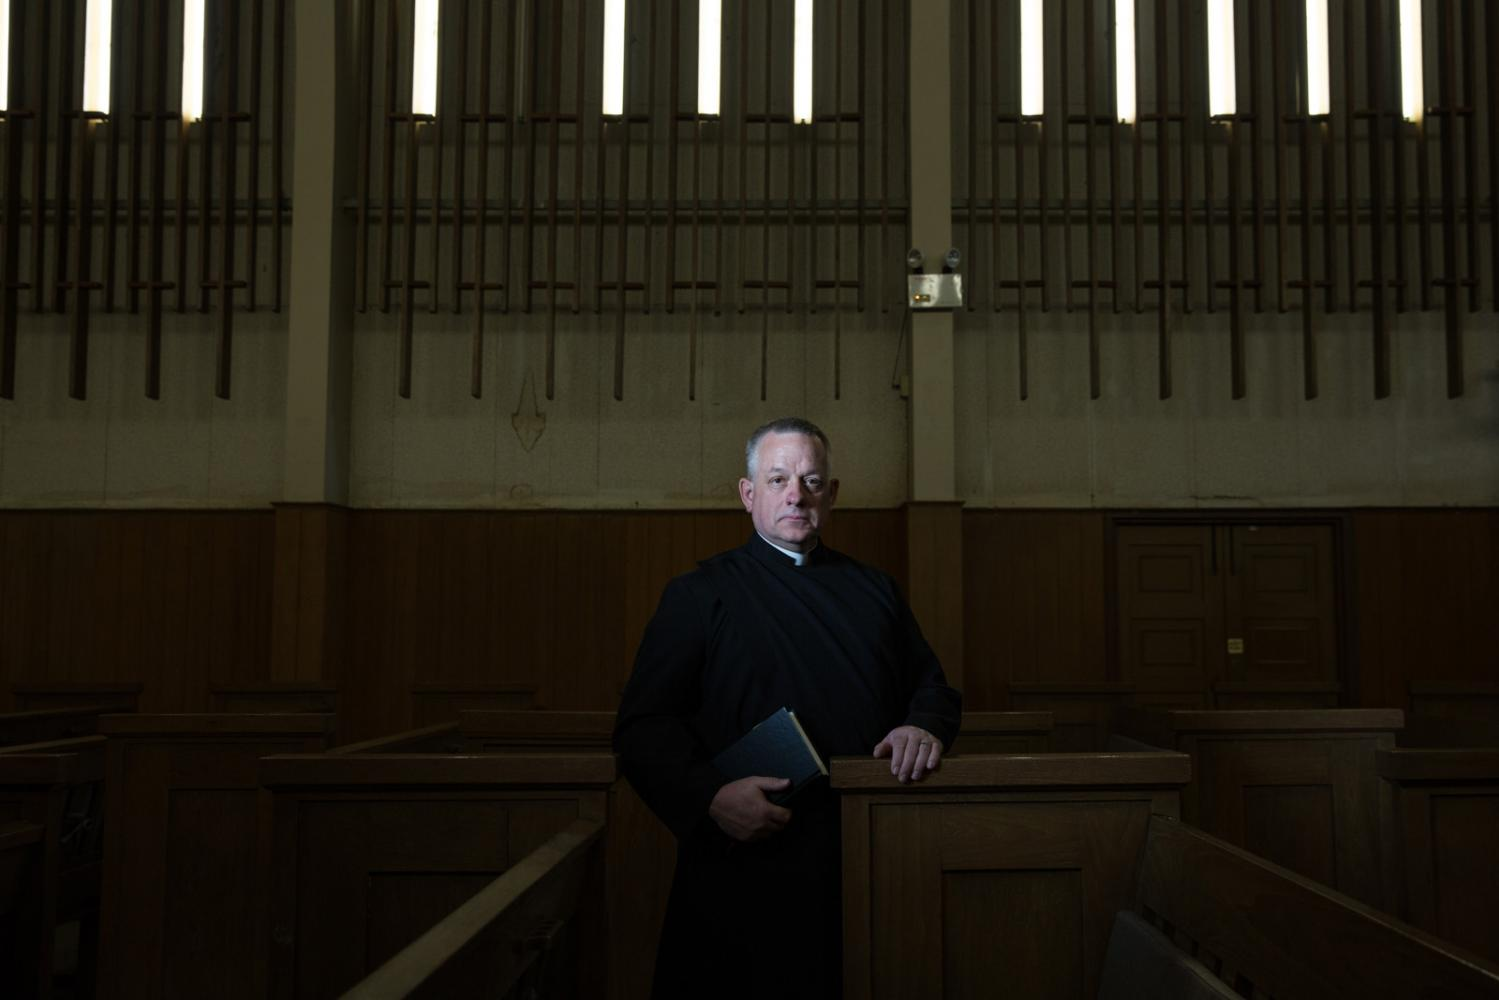 American Anglican Priest Erich Junger stands in a church in Bangkok, Thailand.